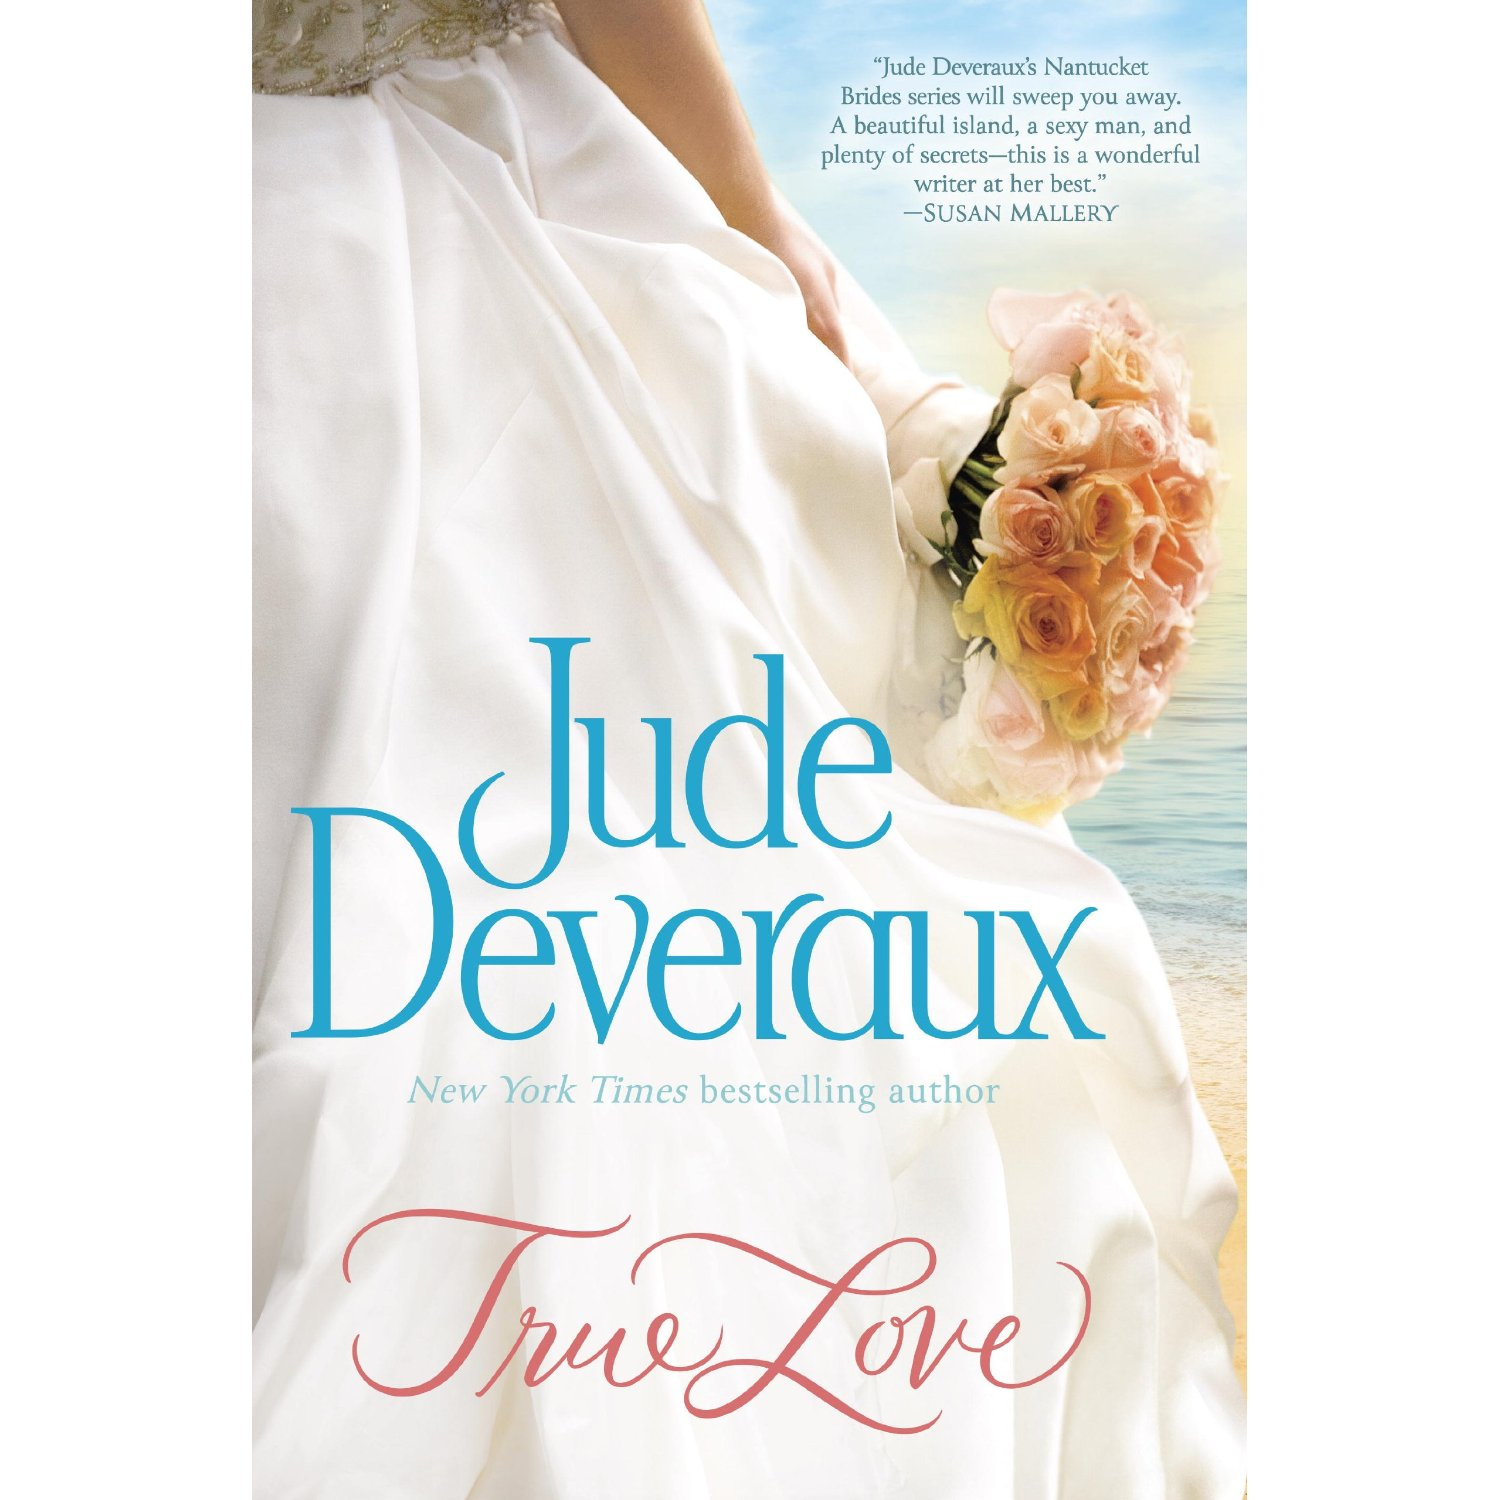 Nantucket Brides Trilogy: True Love 1 by Jude Deveraux (2014, Paperback) #3B17